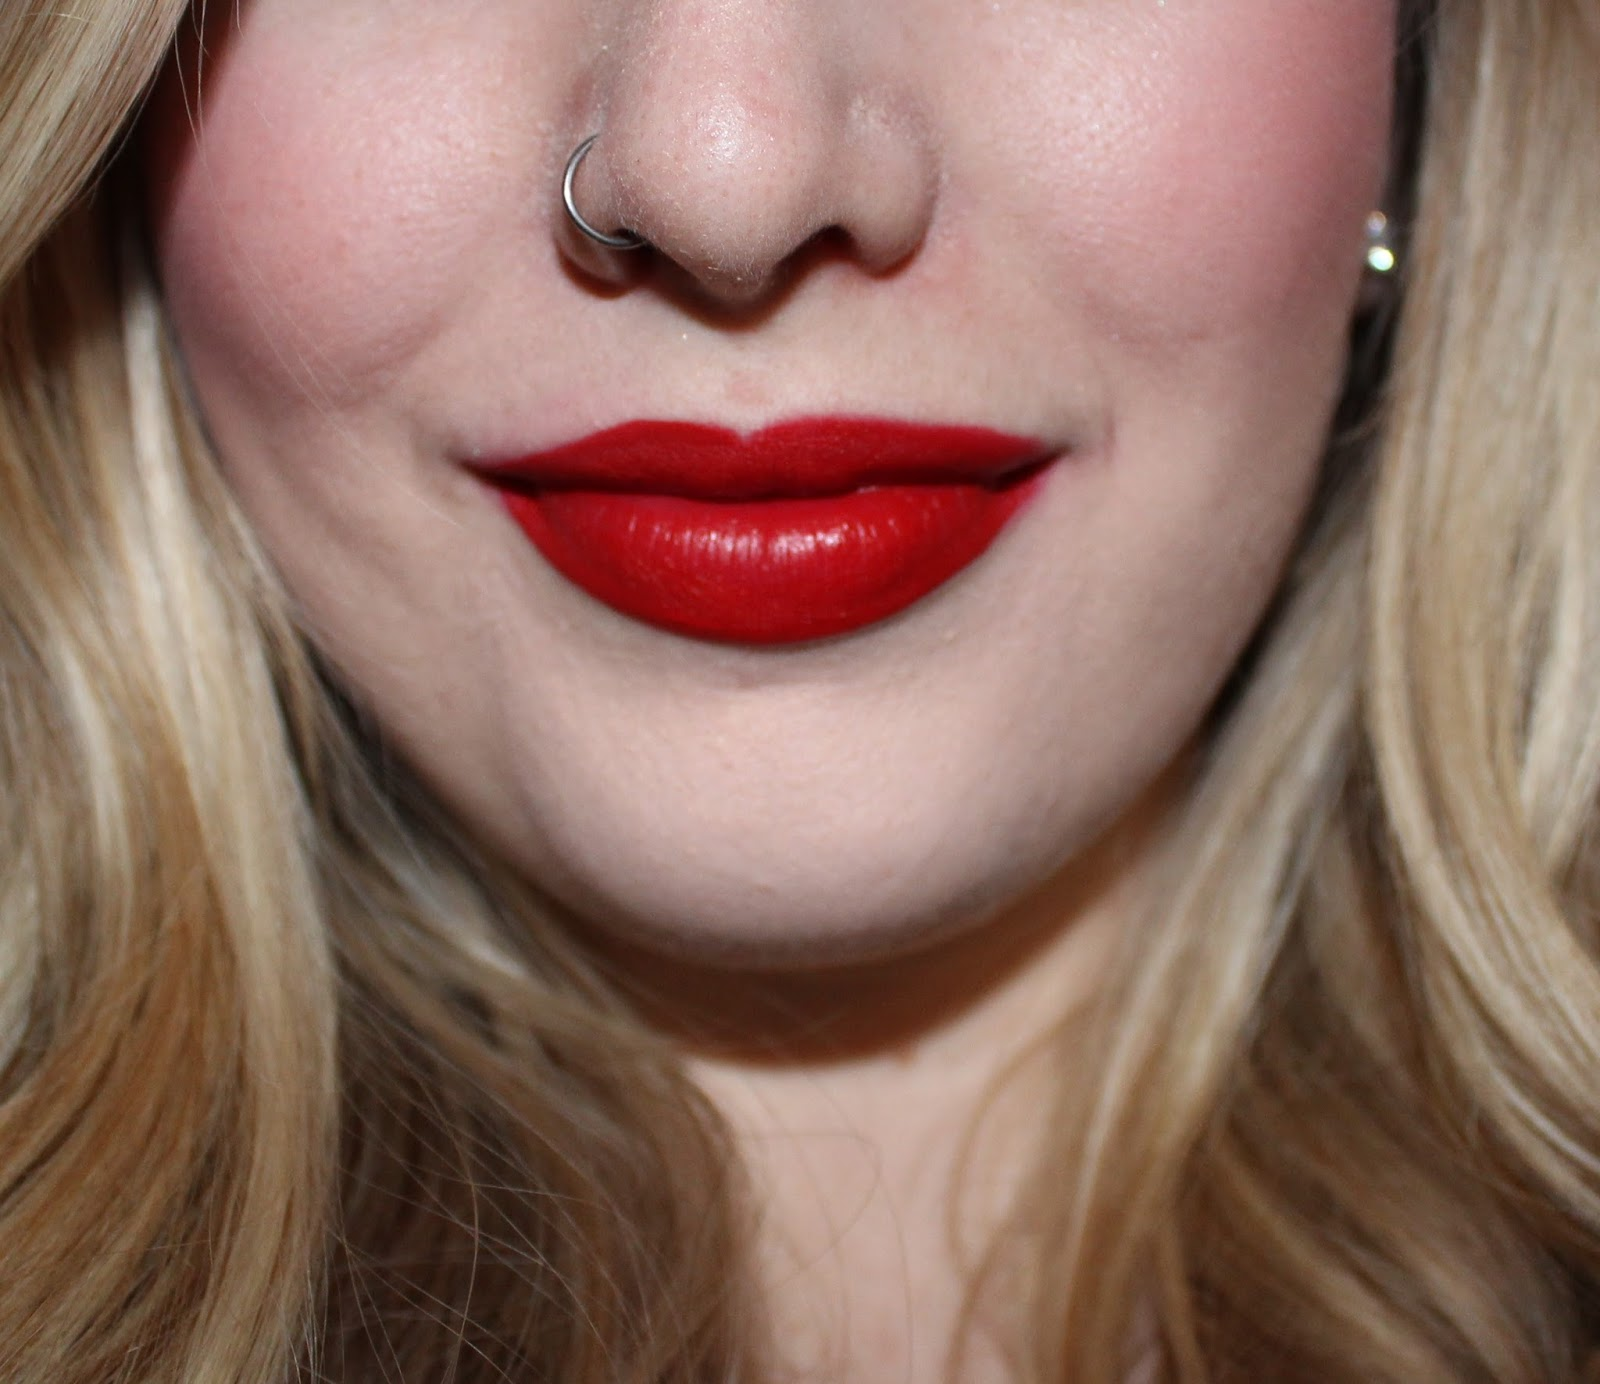 Bien connu Beyond Blush: Anastasia Beverly Hills Liquid Lipstick in American Doll BO72